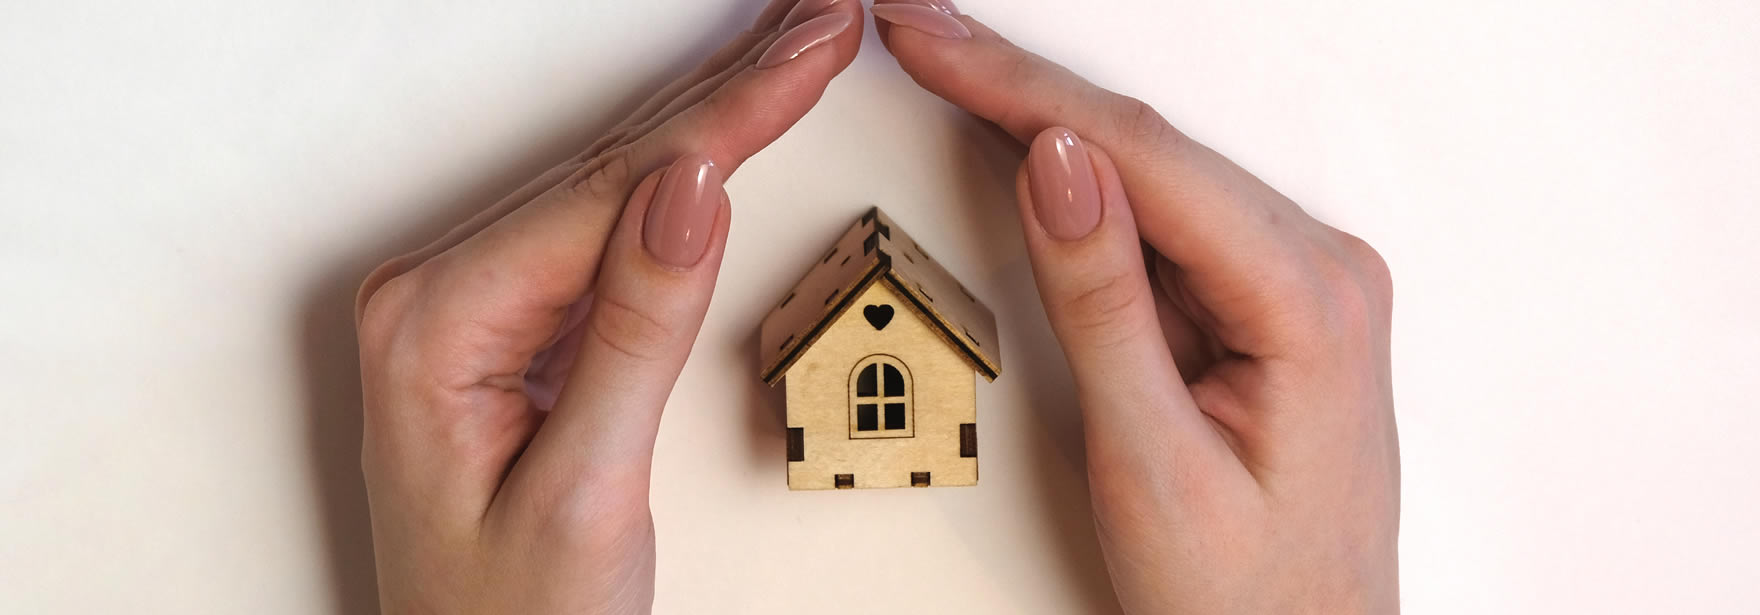 Mortgage Insurance is usually required when a client puts down less than 20% on their home purchase.